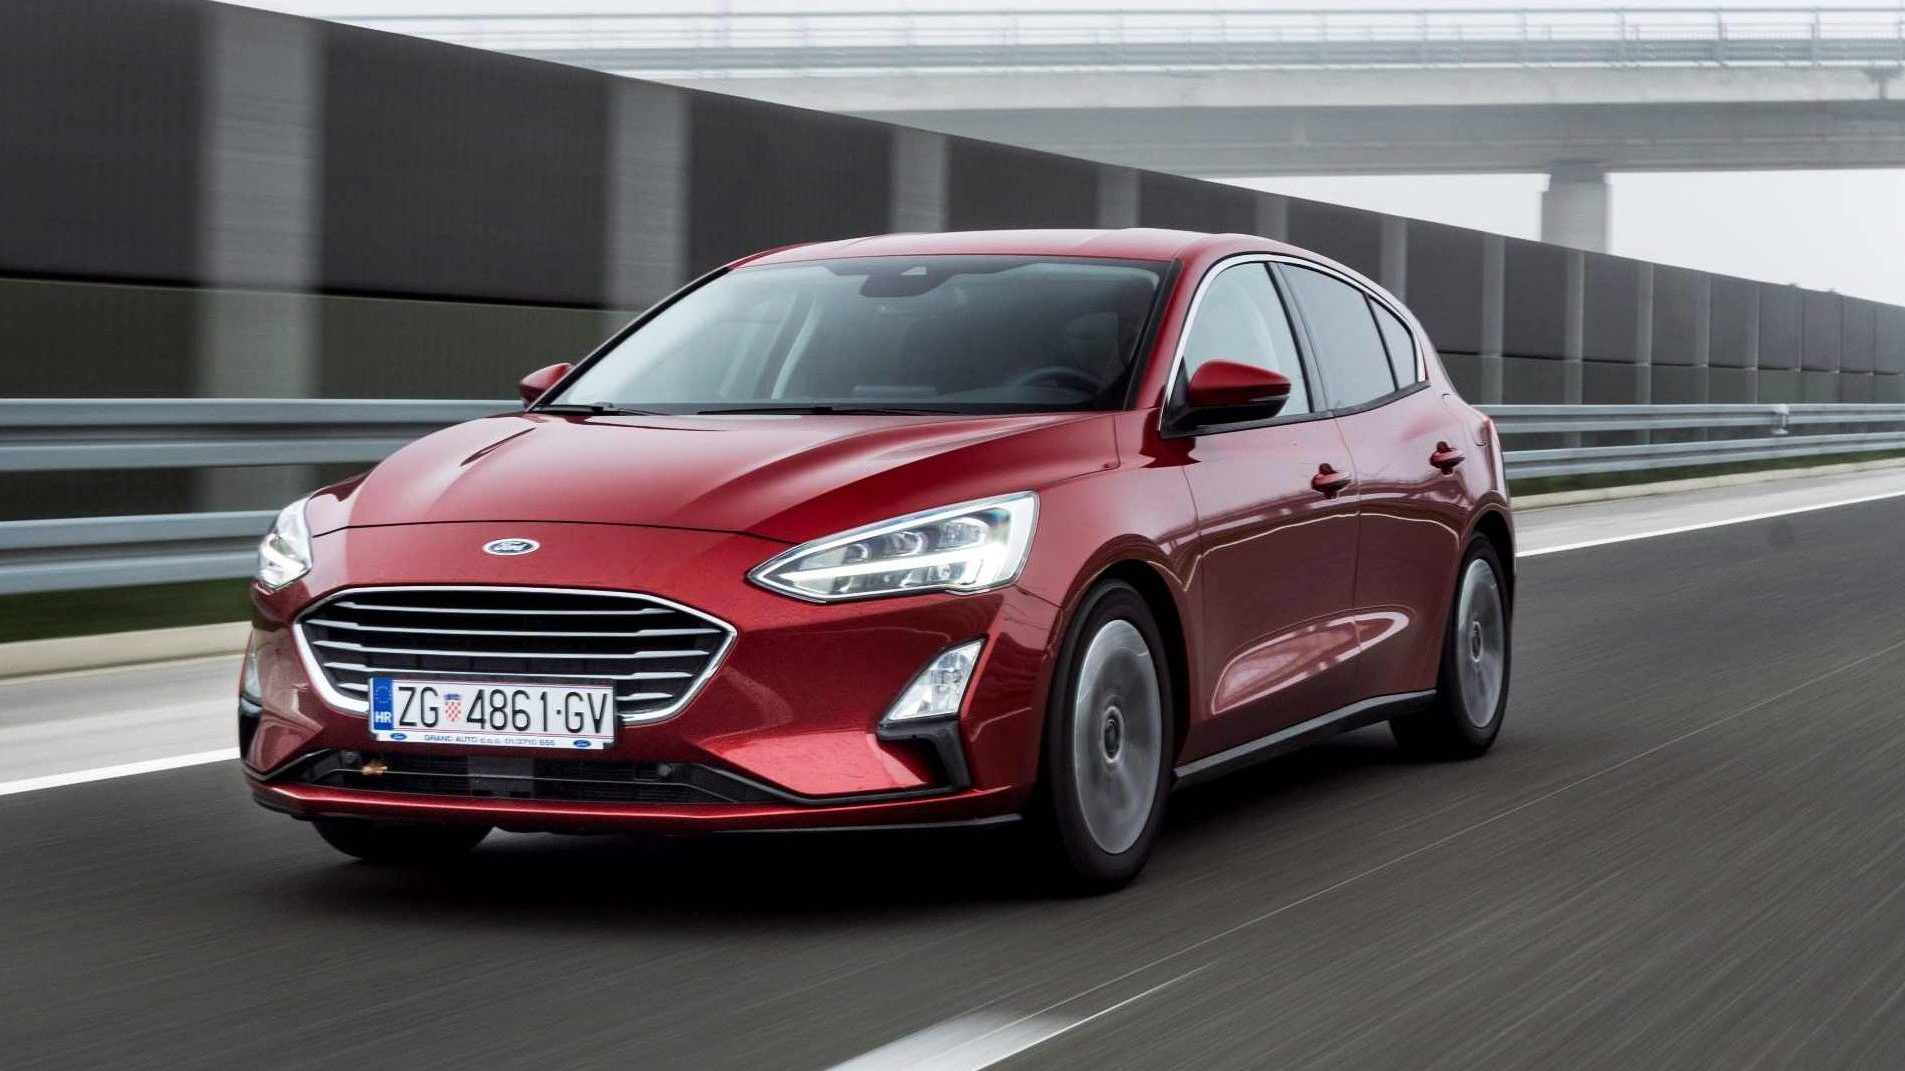 Image forPrvi test Ford Focus 1.5 TDCI 120 Business AT8